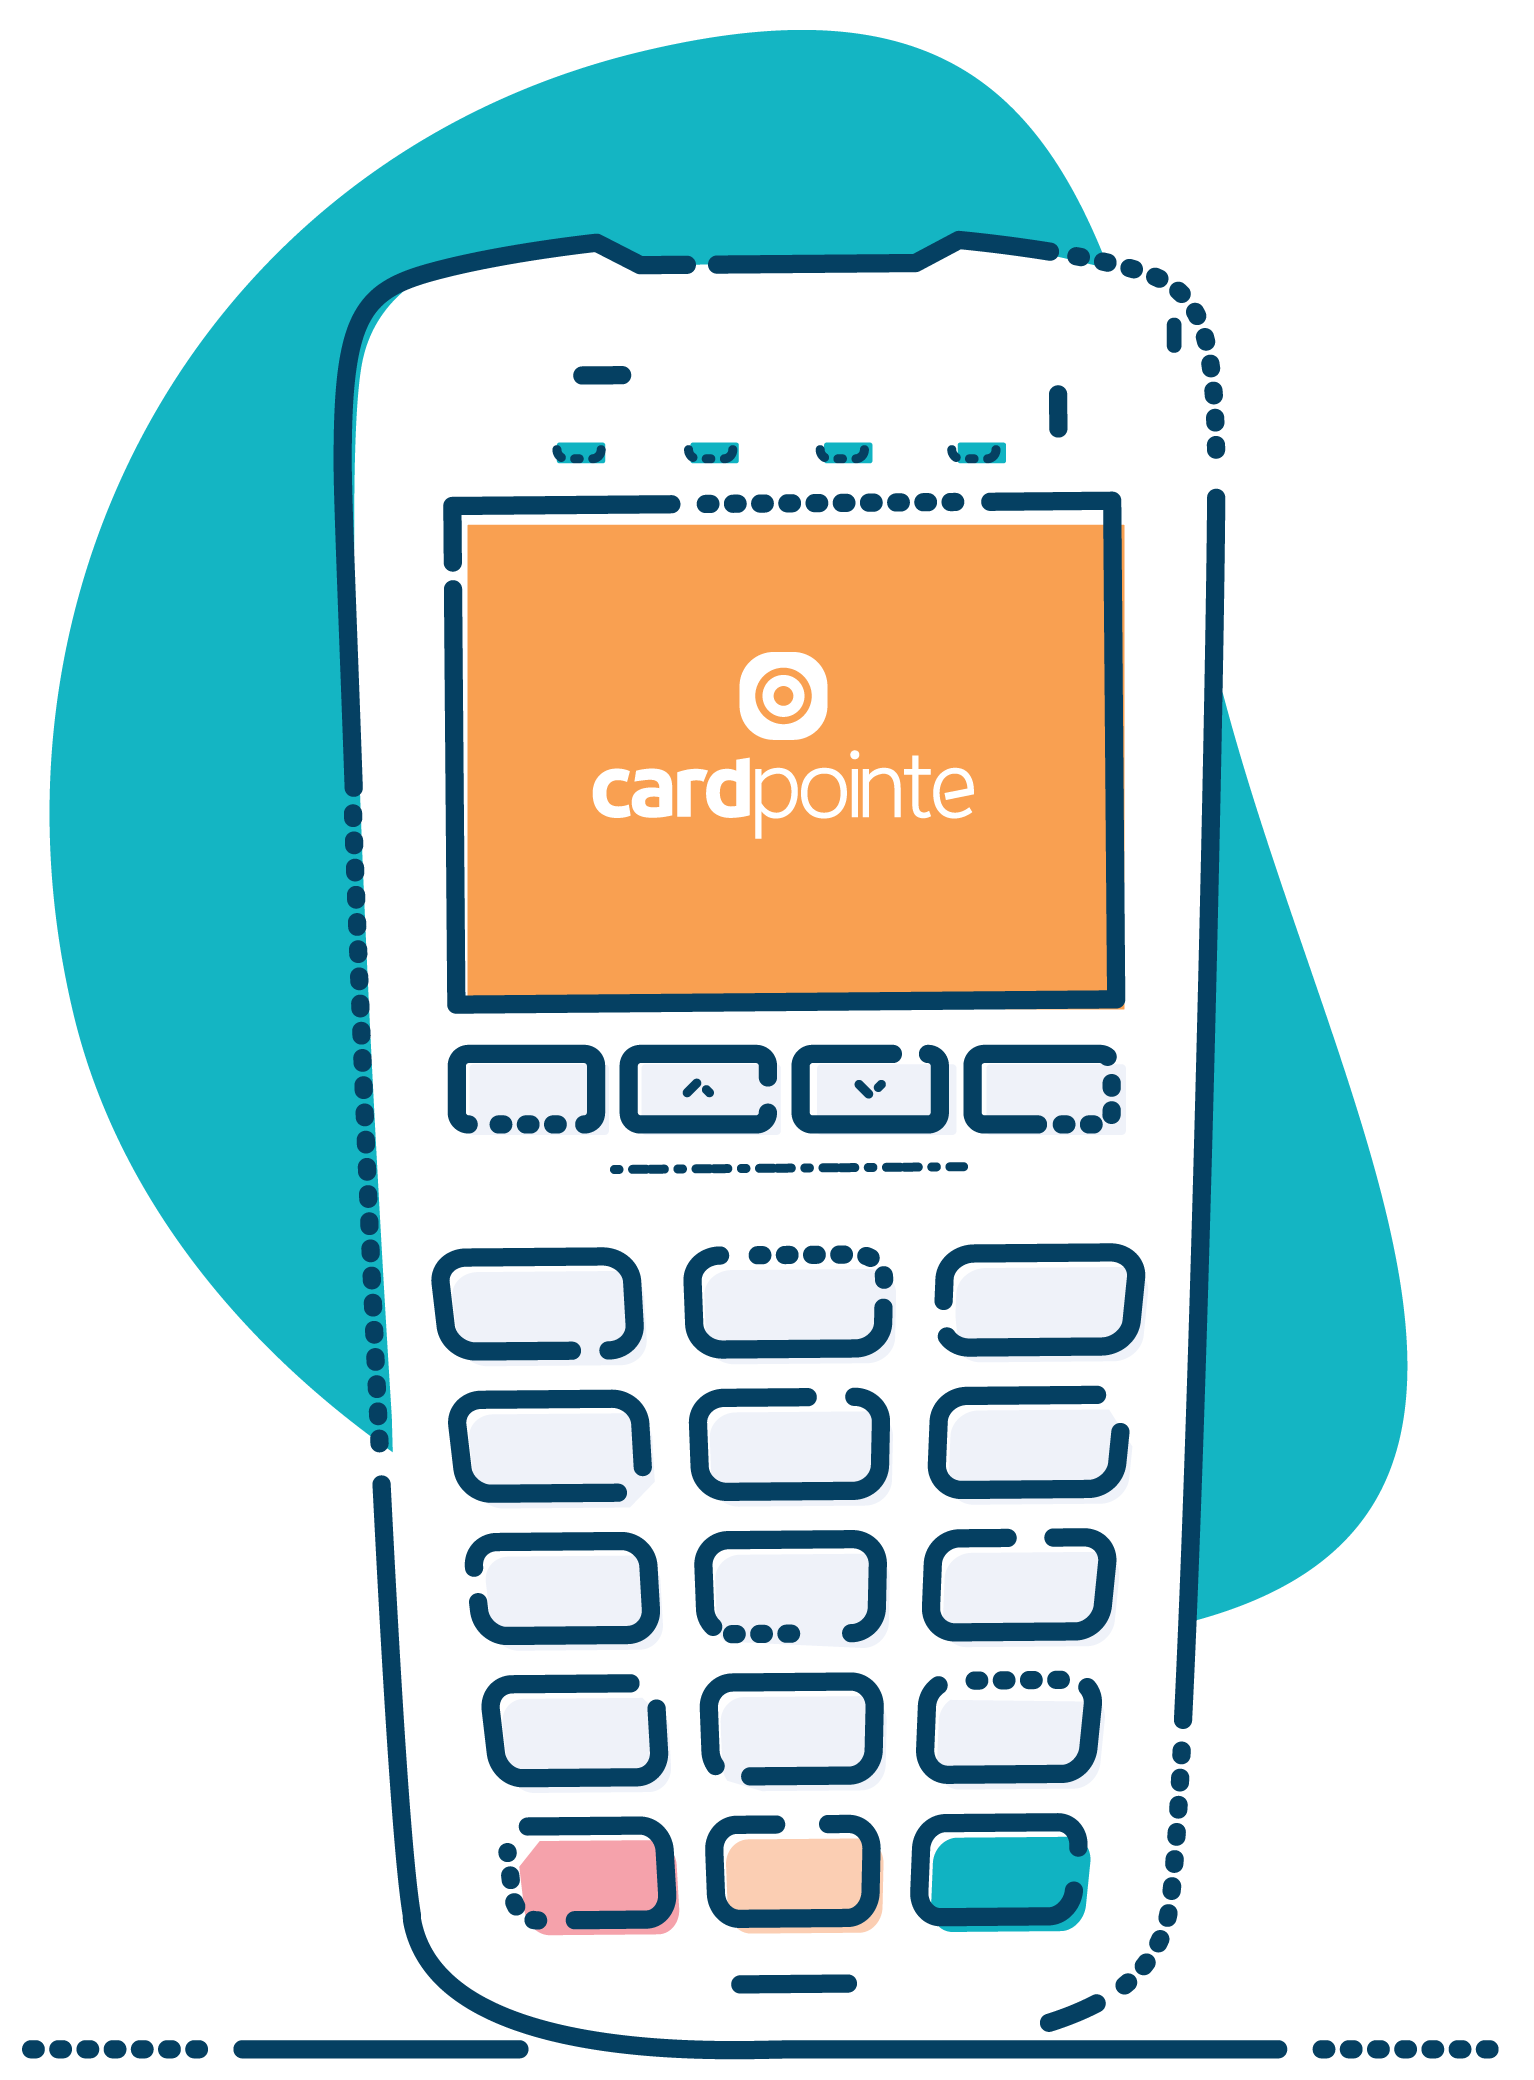 CardPointe Terminal | CardConnect Support Center